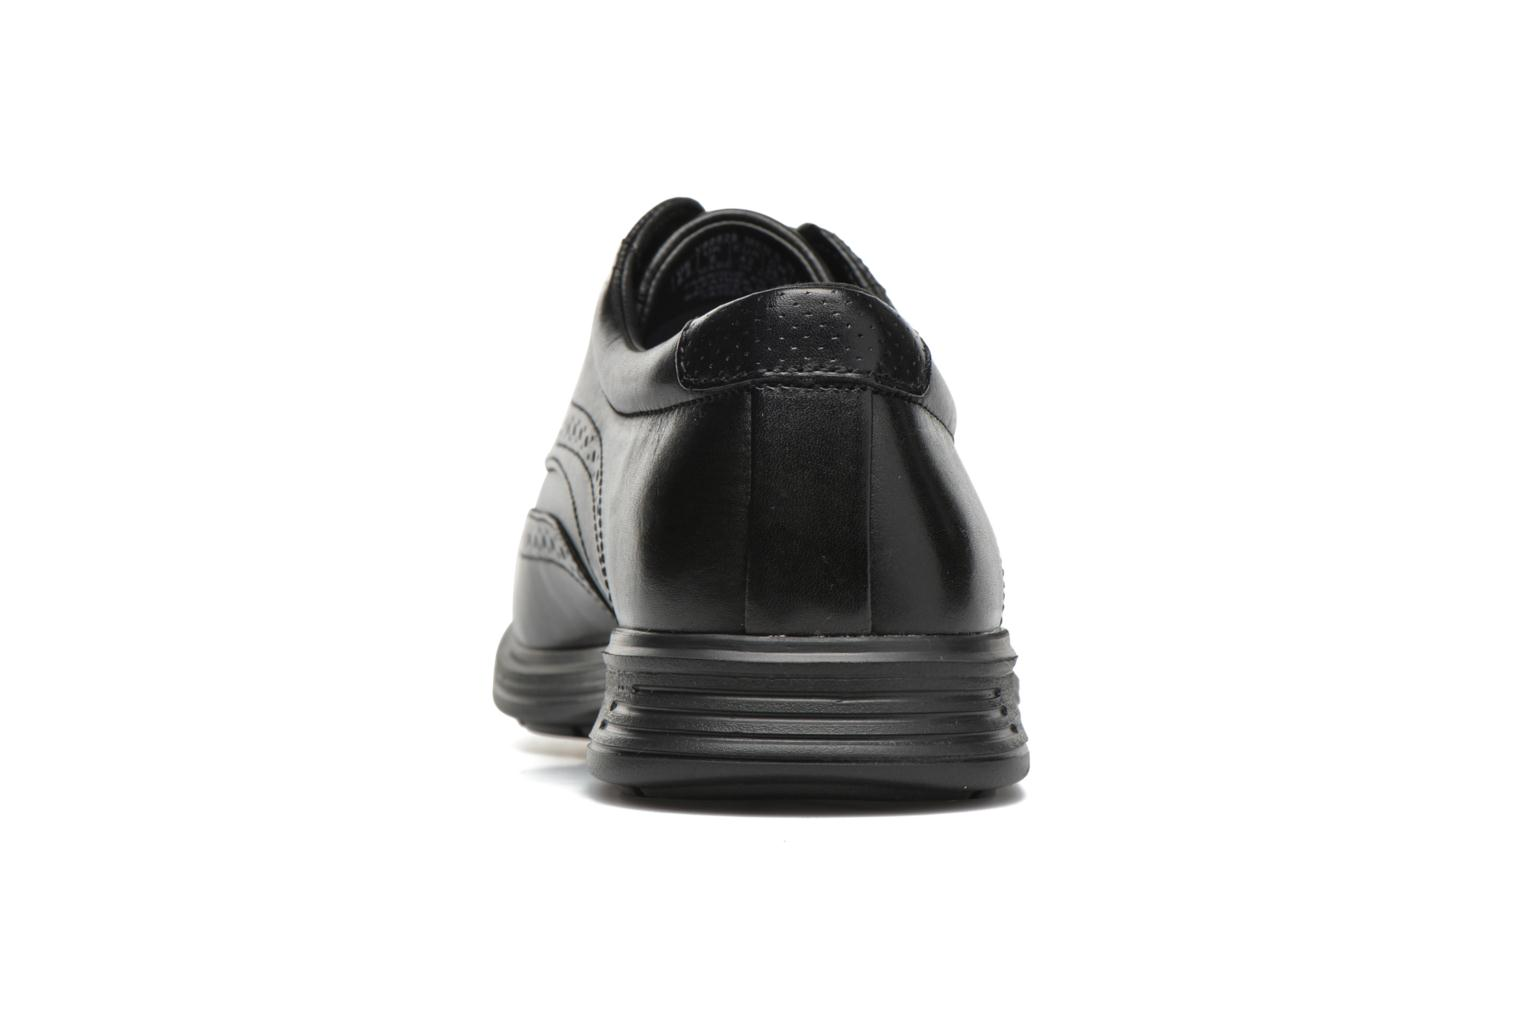 Zapatos con cordones Rockport DP2 Light Wing Tip Negro vista lateral derecha